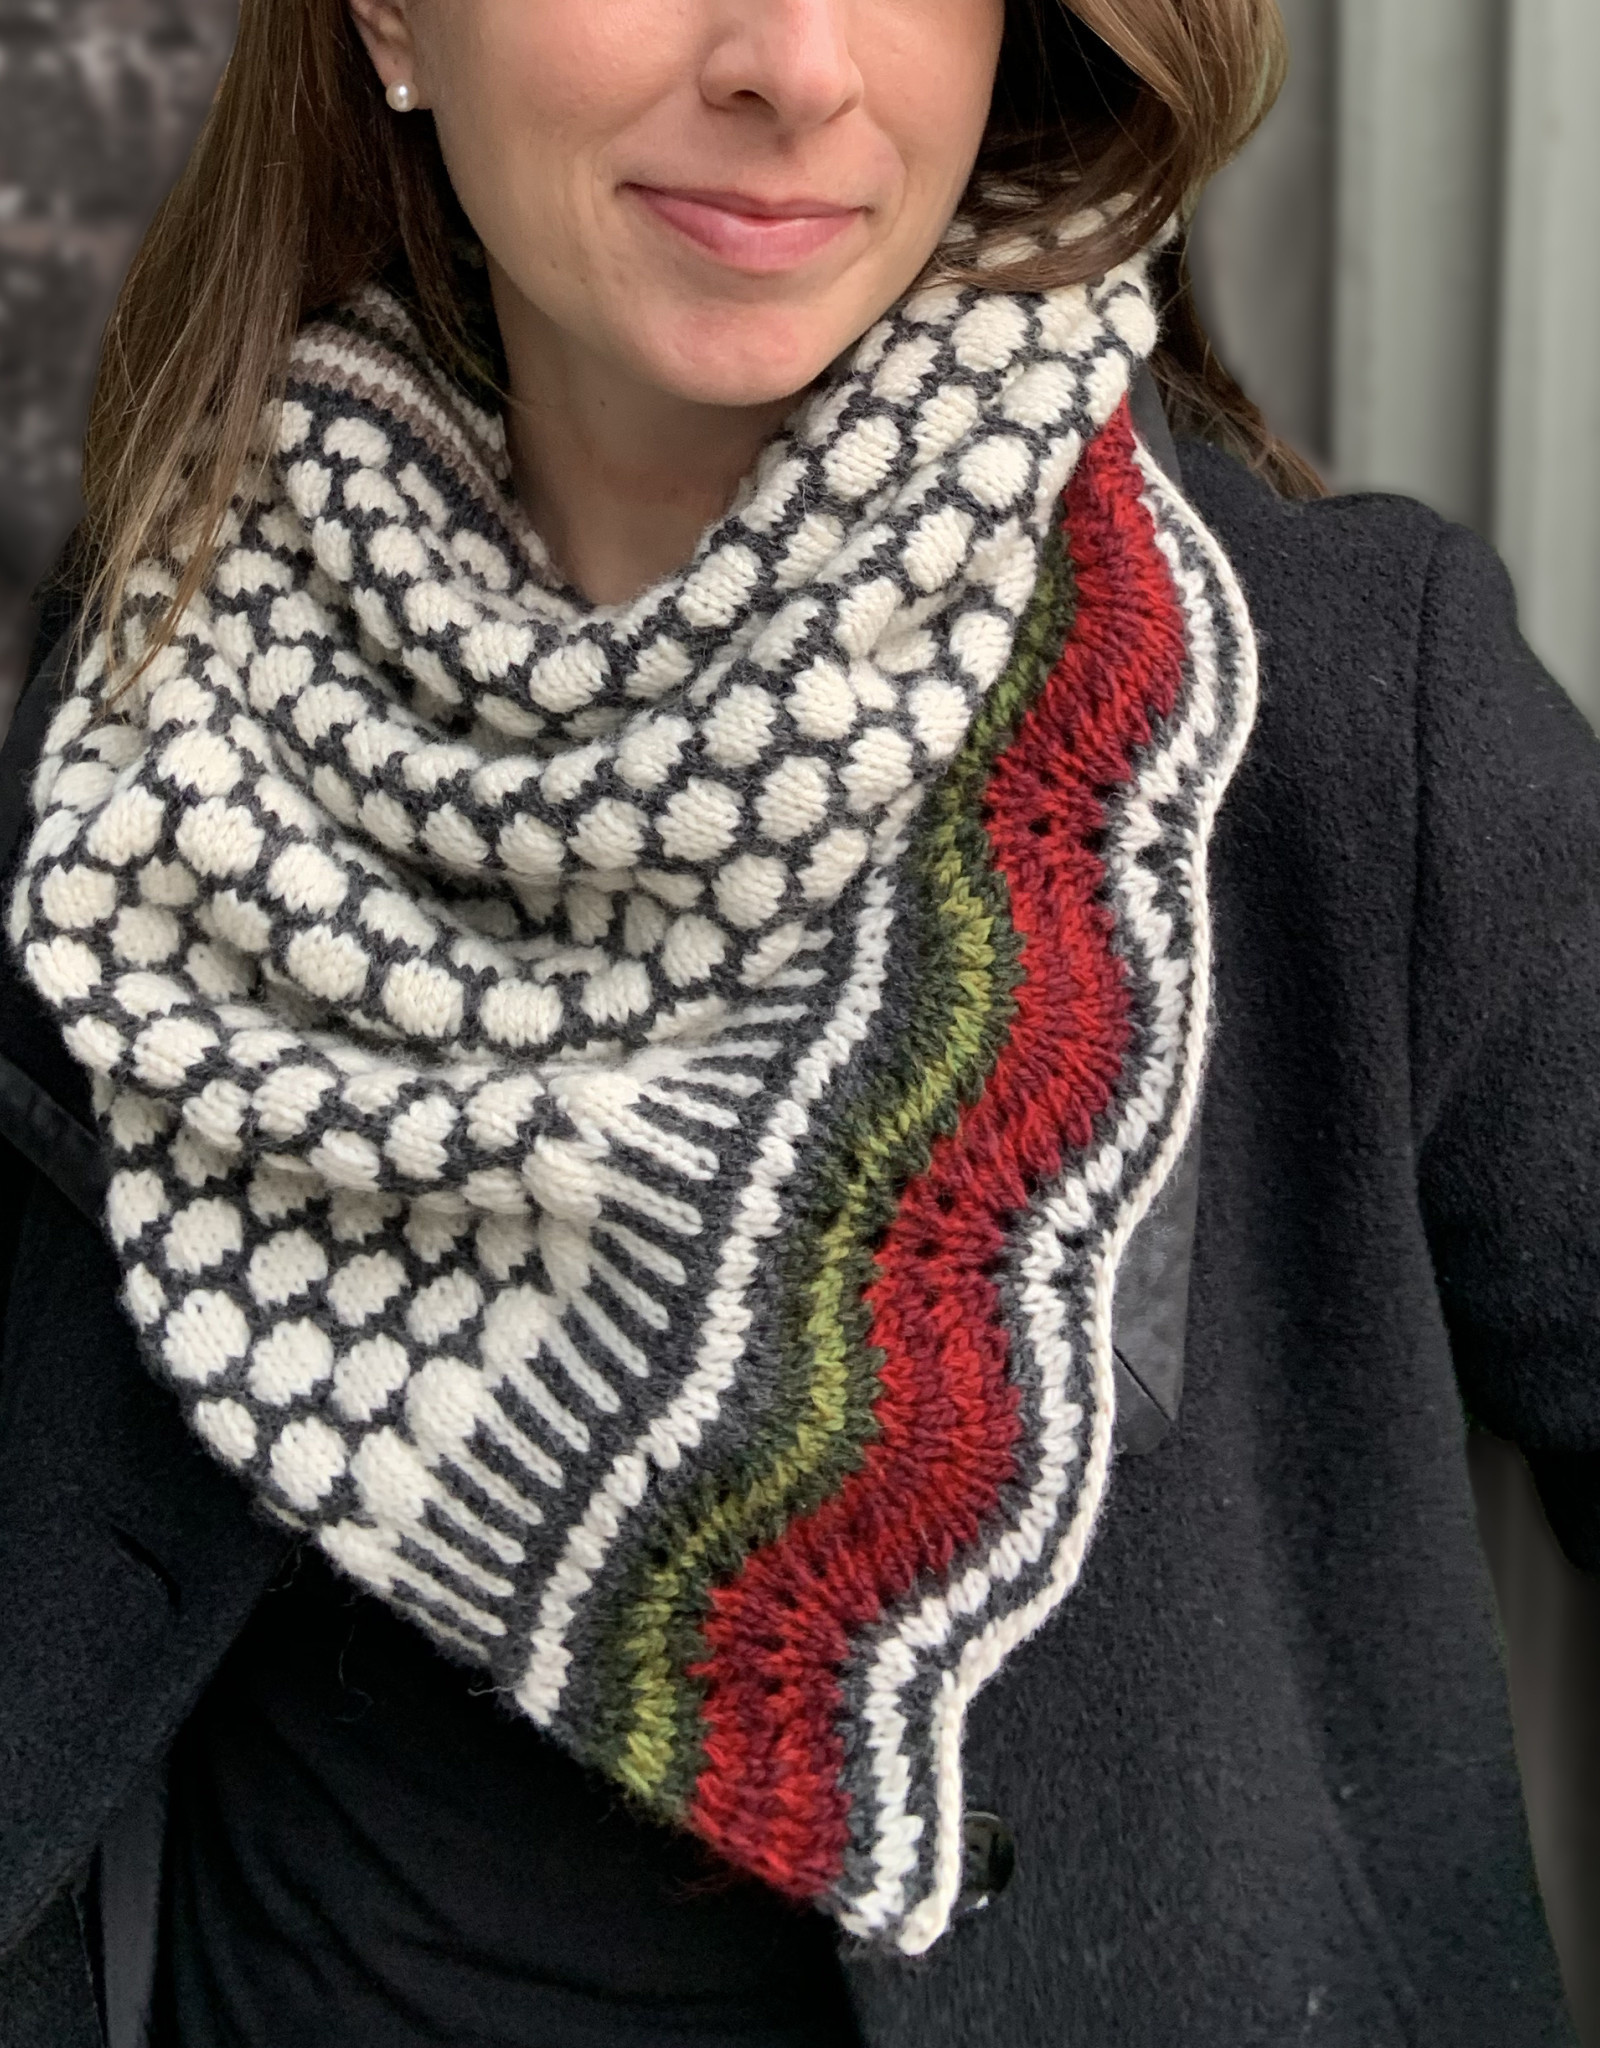 New Huffman Studios Wintersonne Cowl Kit  - without pattern